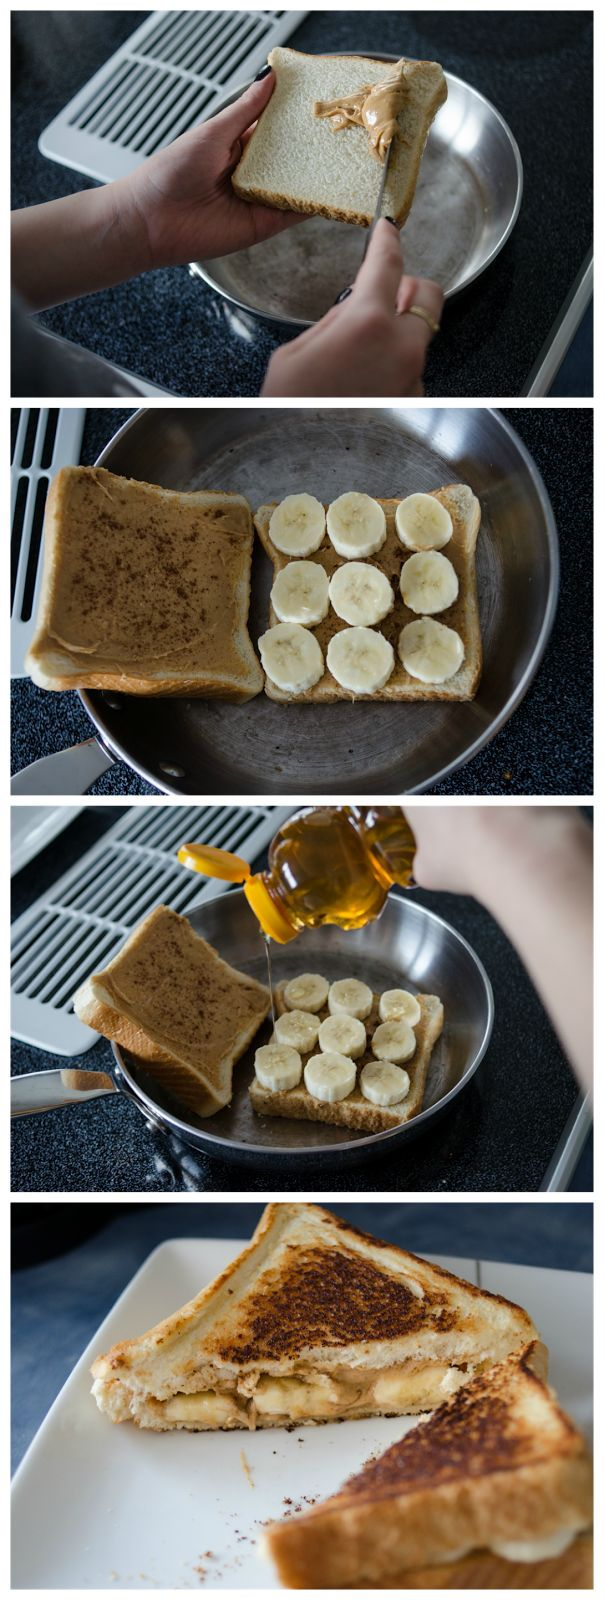 Peanut Butter and Banana Grilled Sandwich